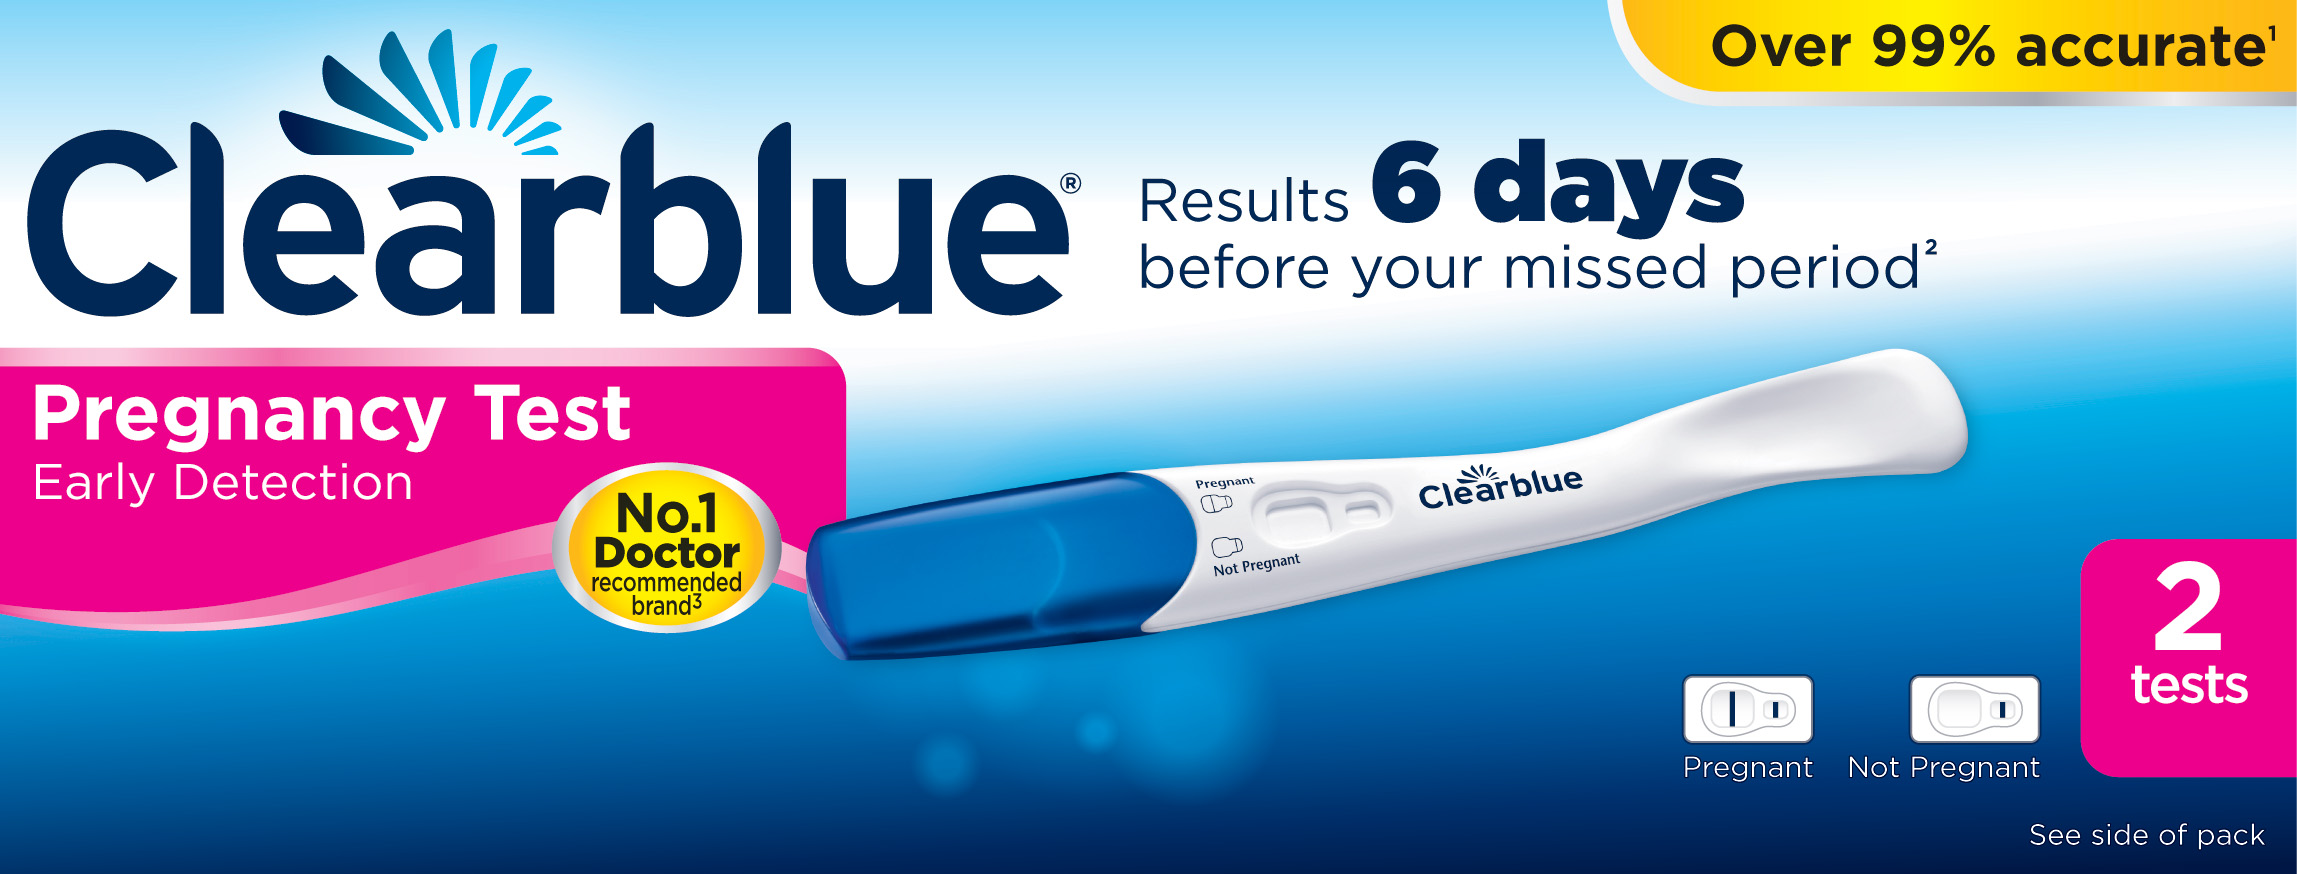 How accurate is clearblue pregnancy test 2 days before missed period